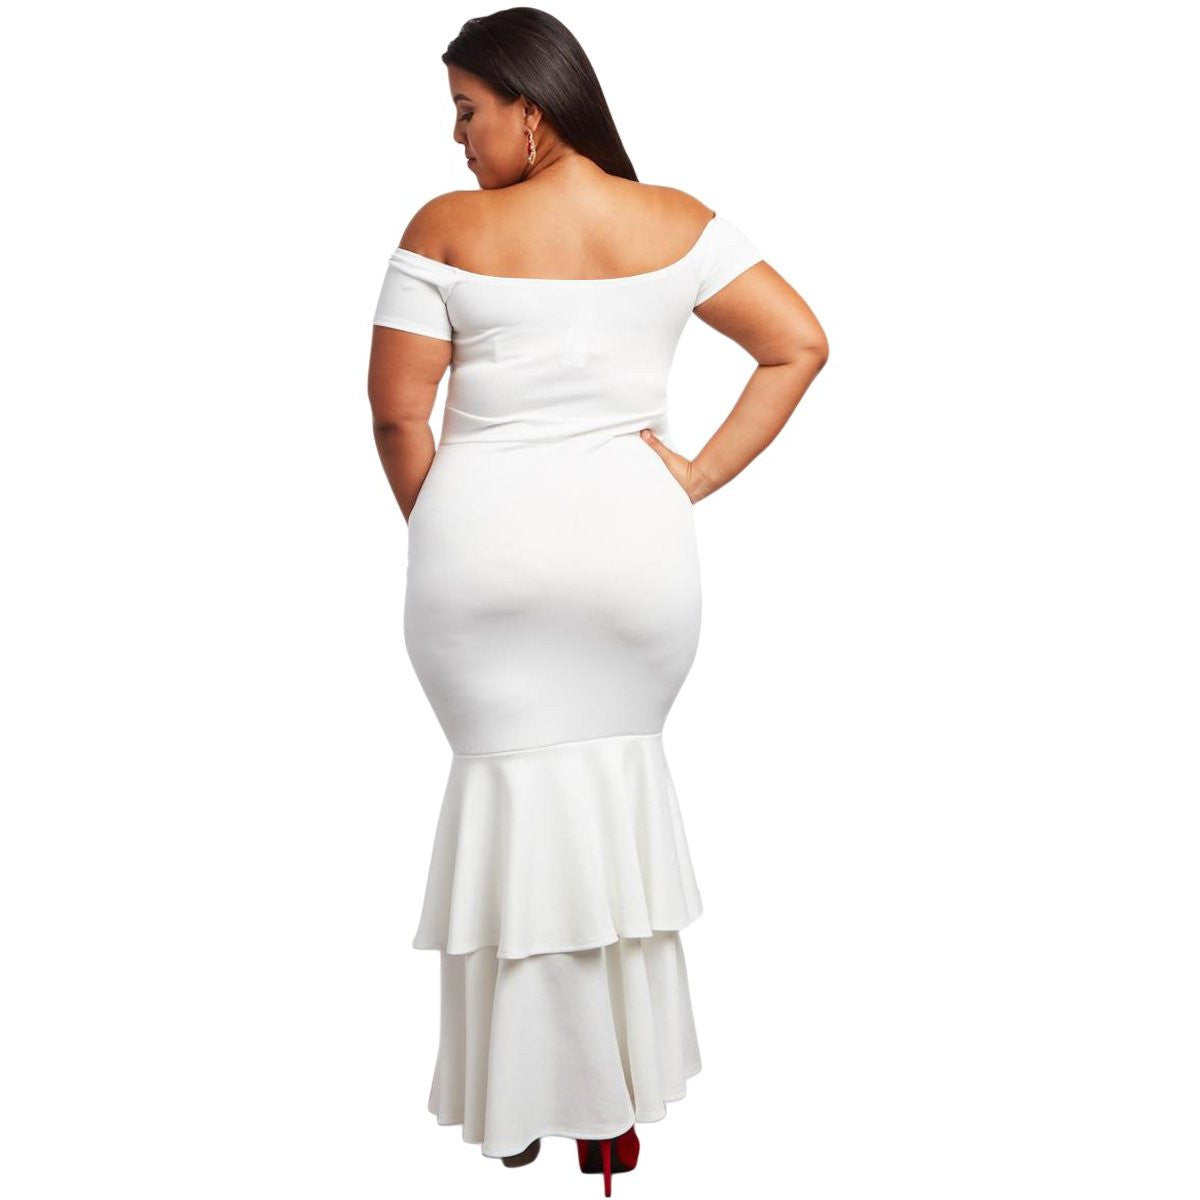 KELLIPS White Plus Size Mermaid Maxi Dress